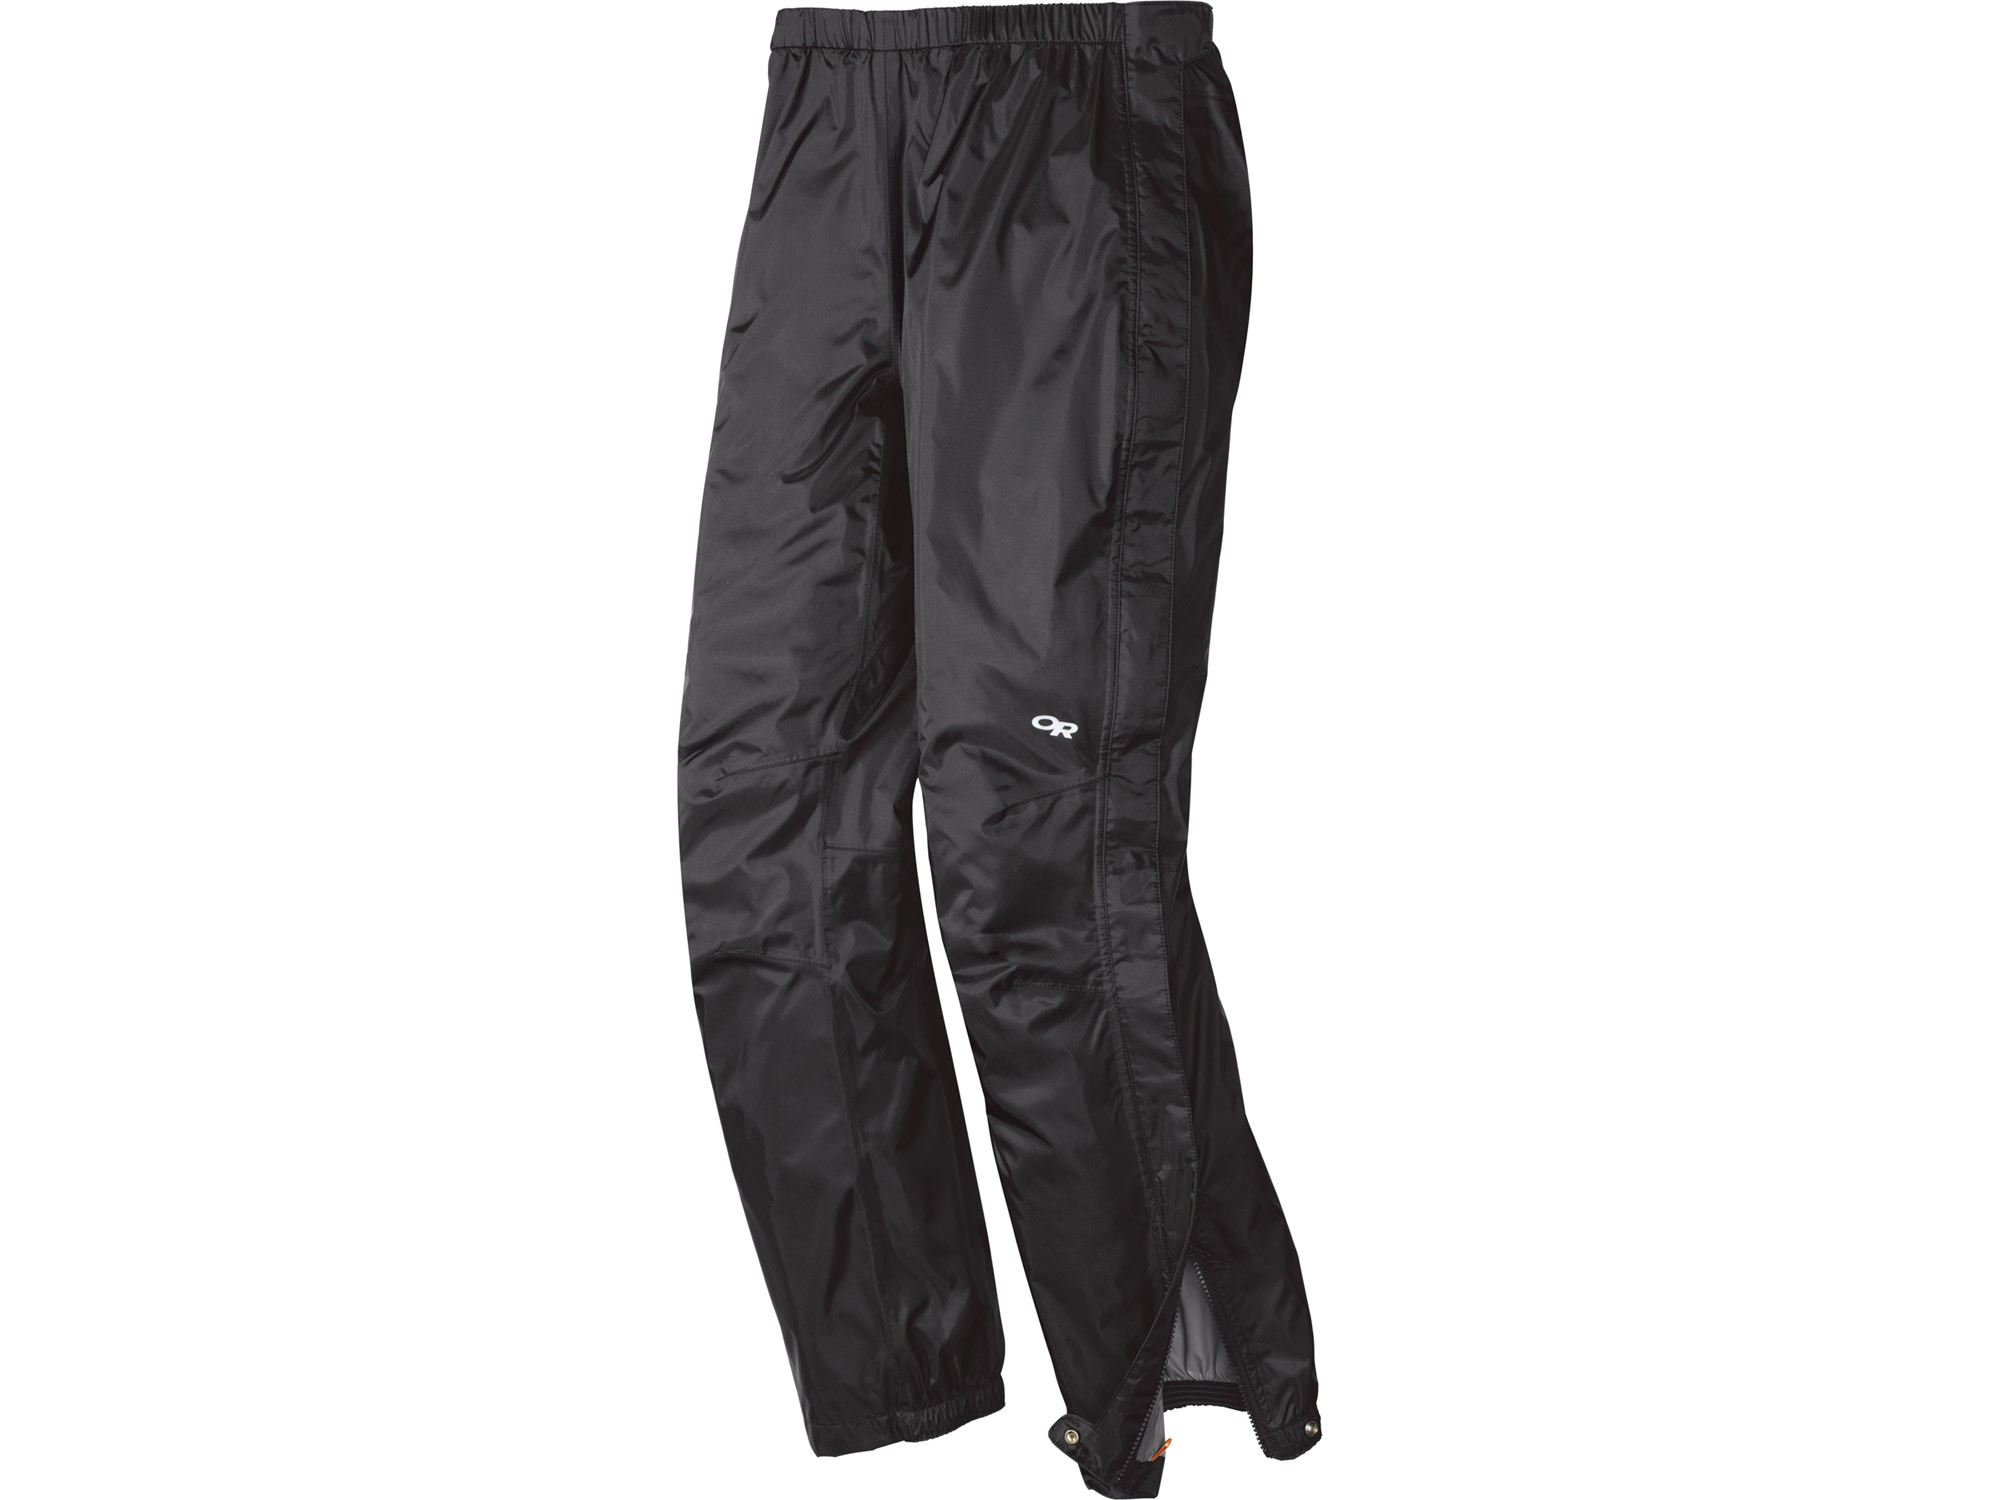 Outdoor Research – Women's Palisade Pants